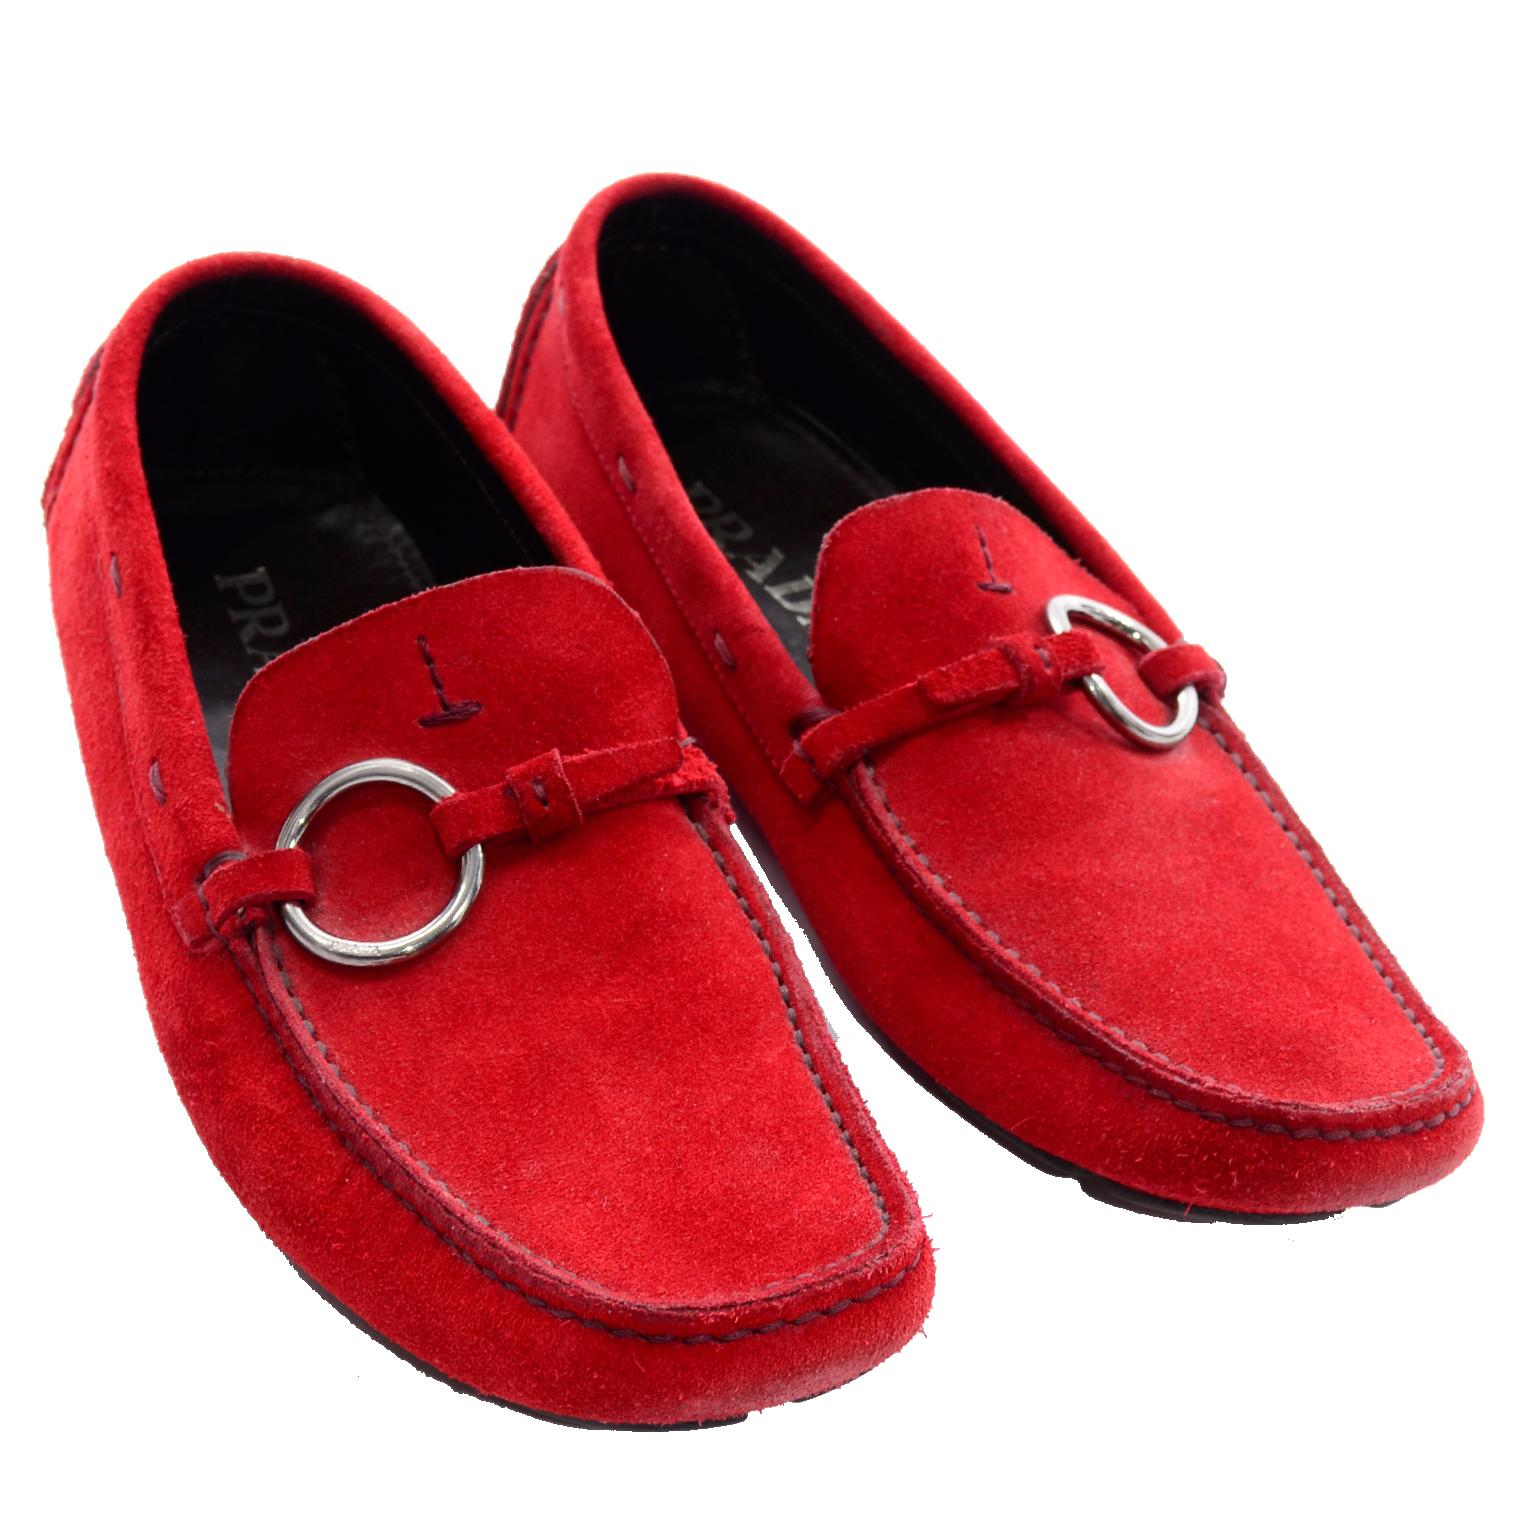 4f5d5a4b2ba6e ... best unworn new prada red suede shoes loafers size 37.5 with silver  ring buckle in new ...